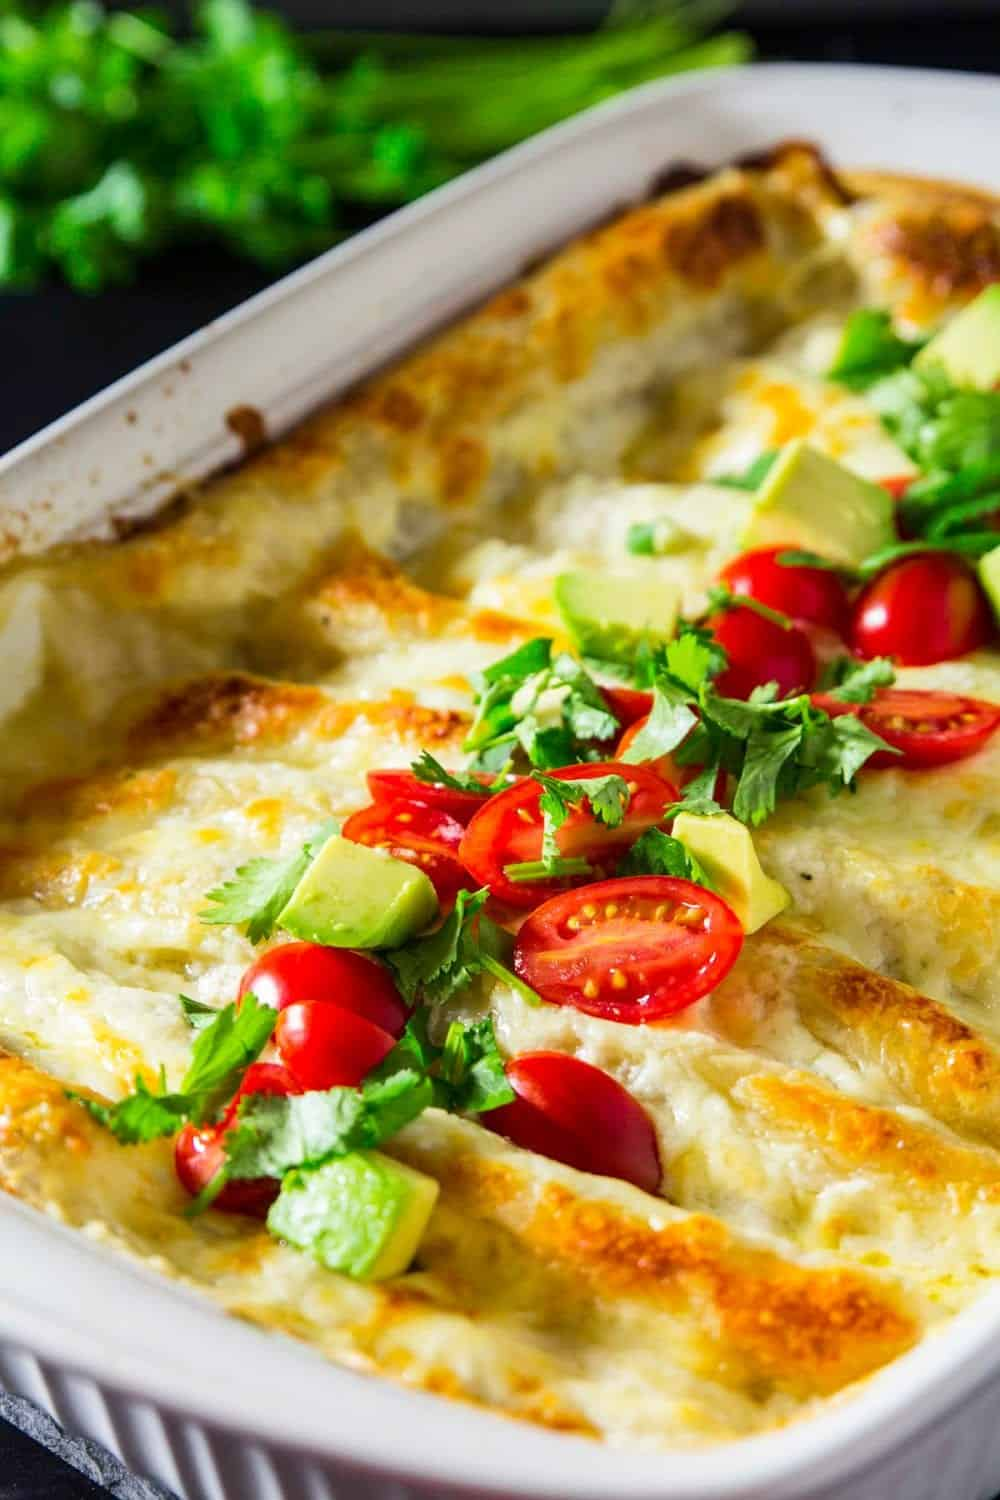 white sauce chicken enchiladas in a baking dish with chopped tomatoes, avocado, and cilantro on top.